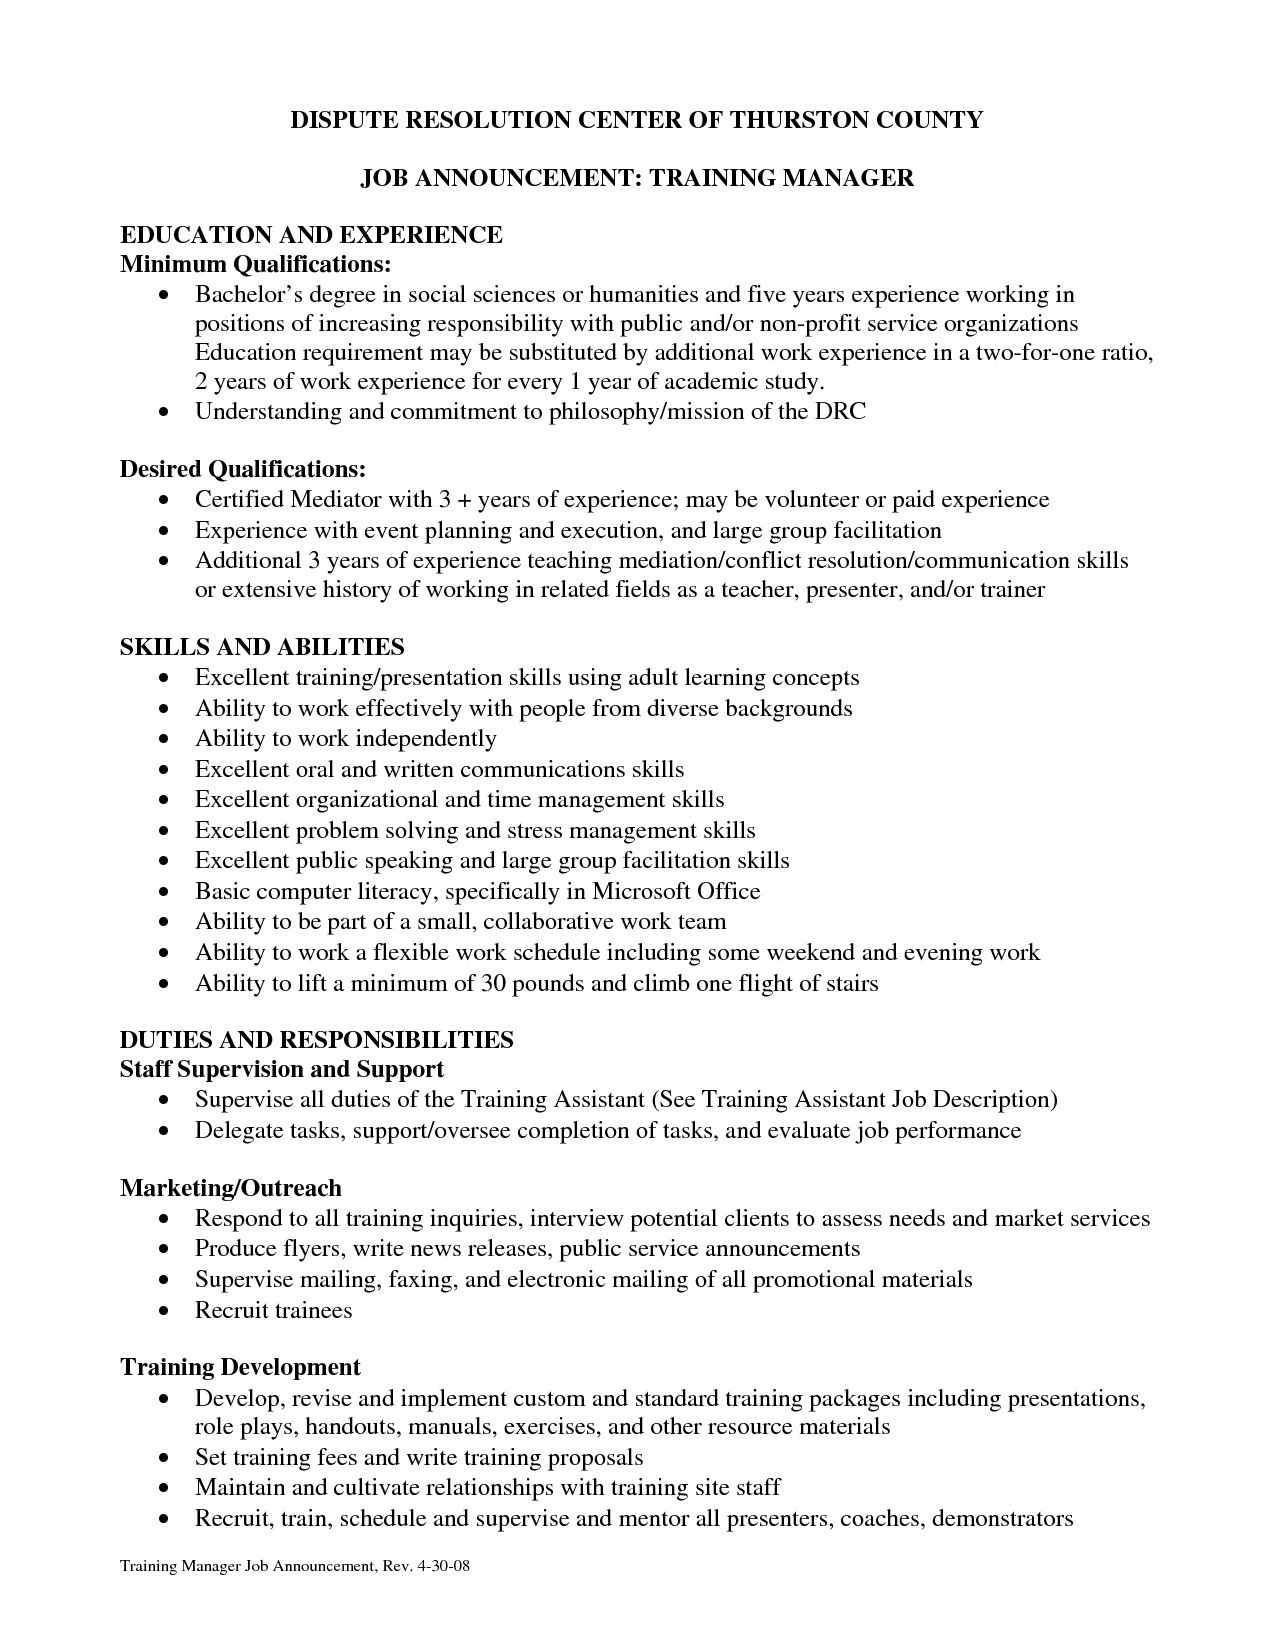 Training Coordinator Resume Cover Letter   Training Coordinator Resume  Cover Letter We Provide As Reference To Make Correct And Good Quality Resume .